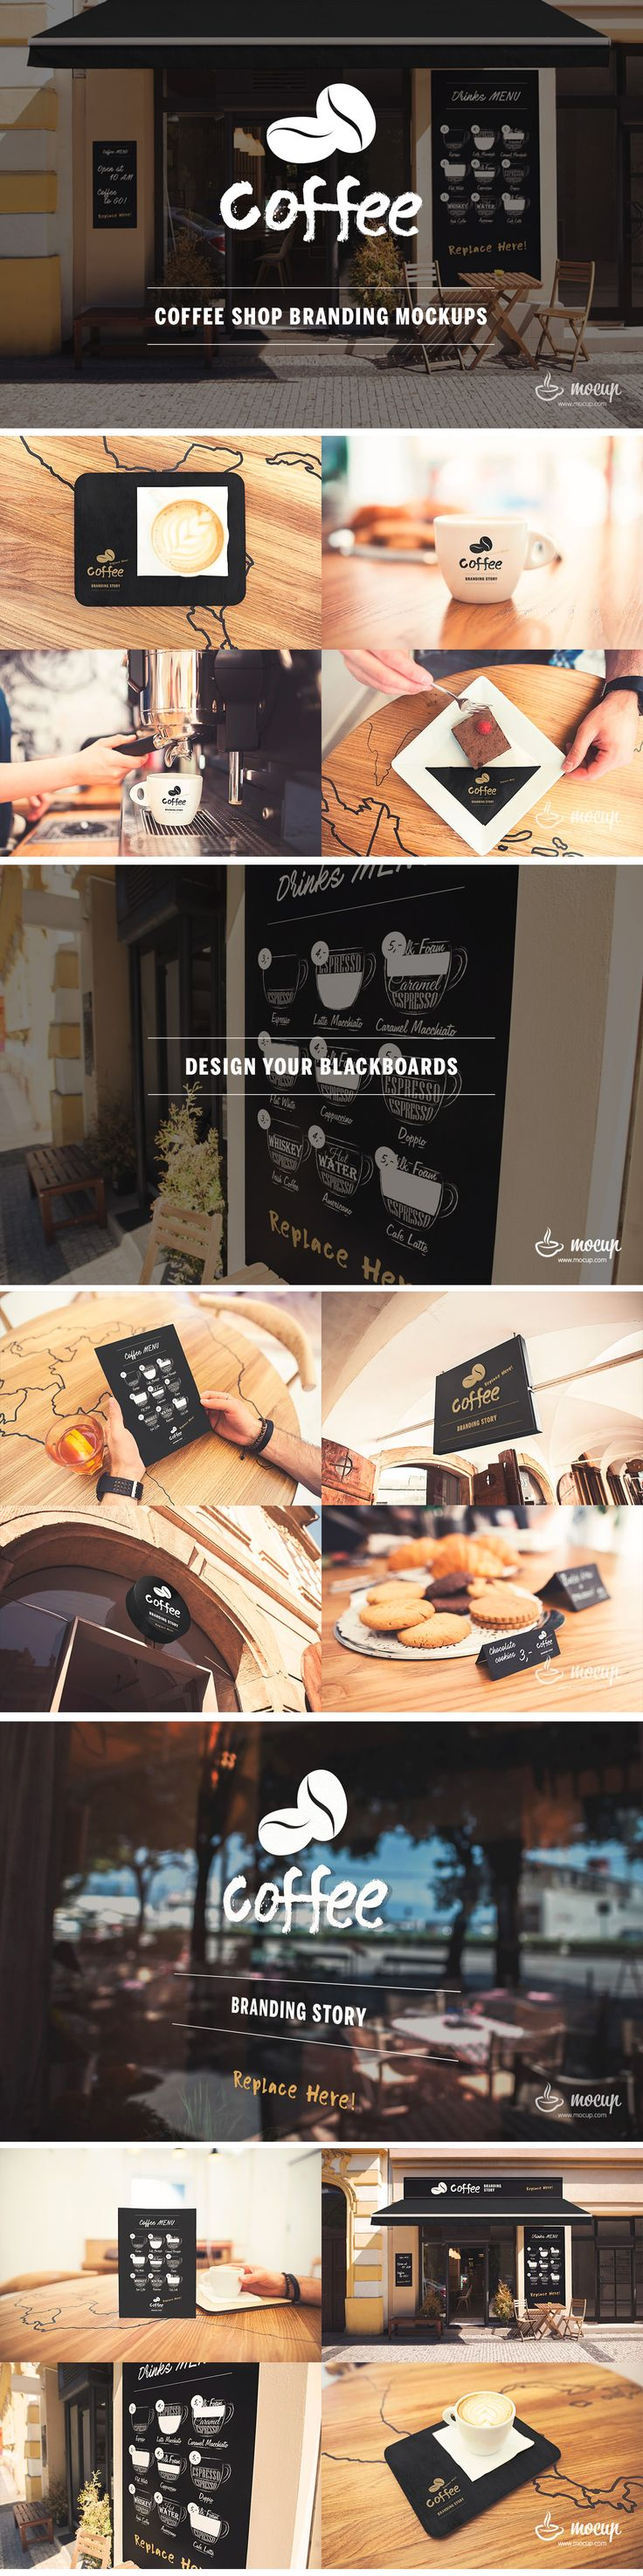 Design your own café. This concept is created for branded the coffee shop or café which contains 13 editable PSD's for your preview, advertising designs and show your work. Easy to use because of smart layers. Ready to present your work. Enjoy it!